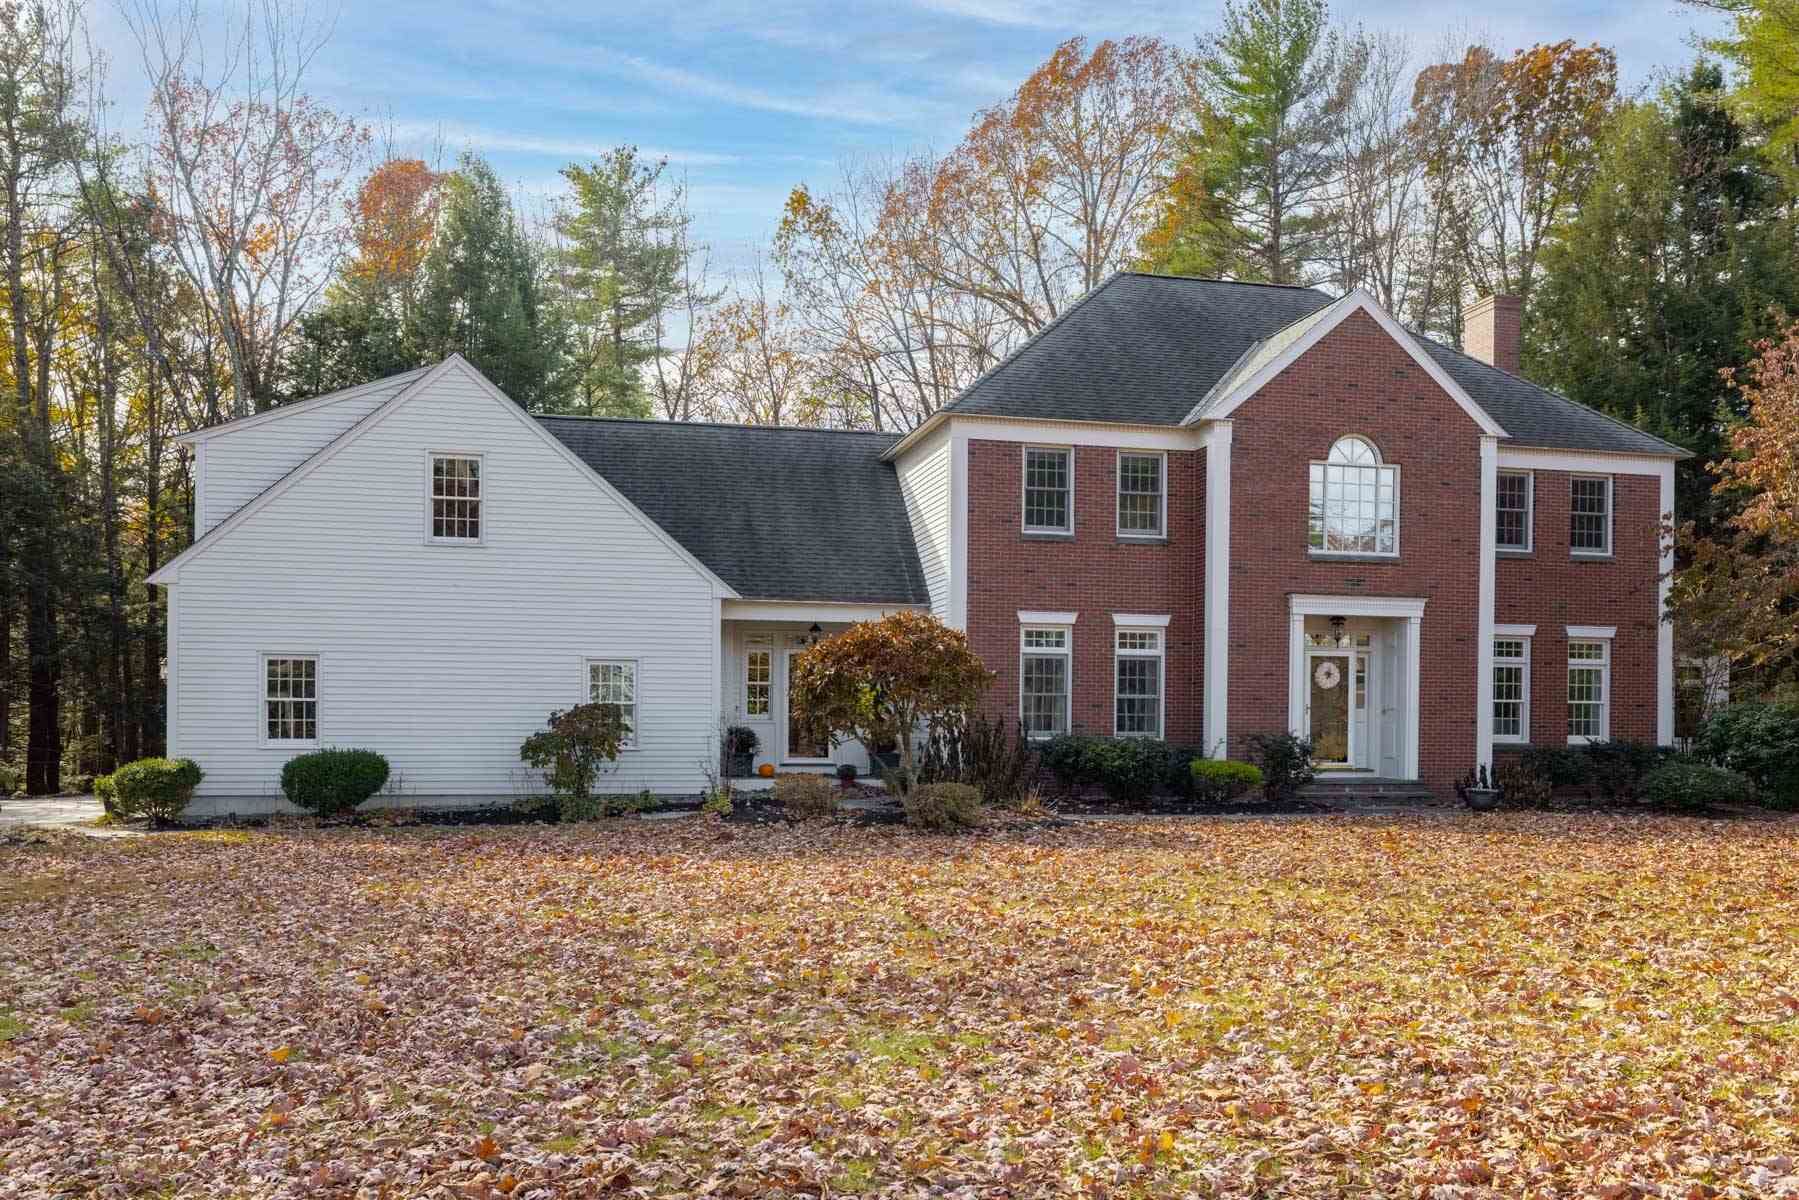 Photo of 26 Deertrees Lane Newfields NH 03856